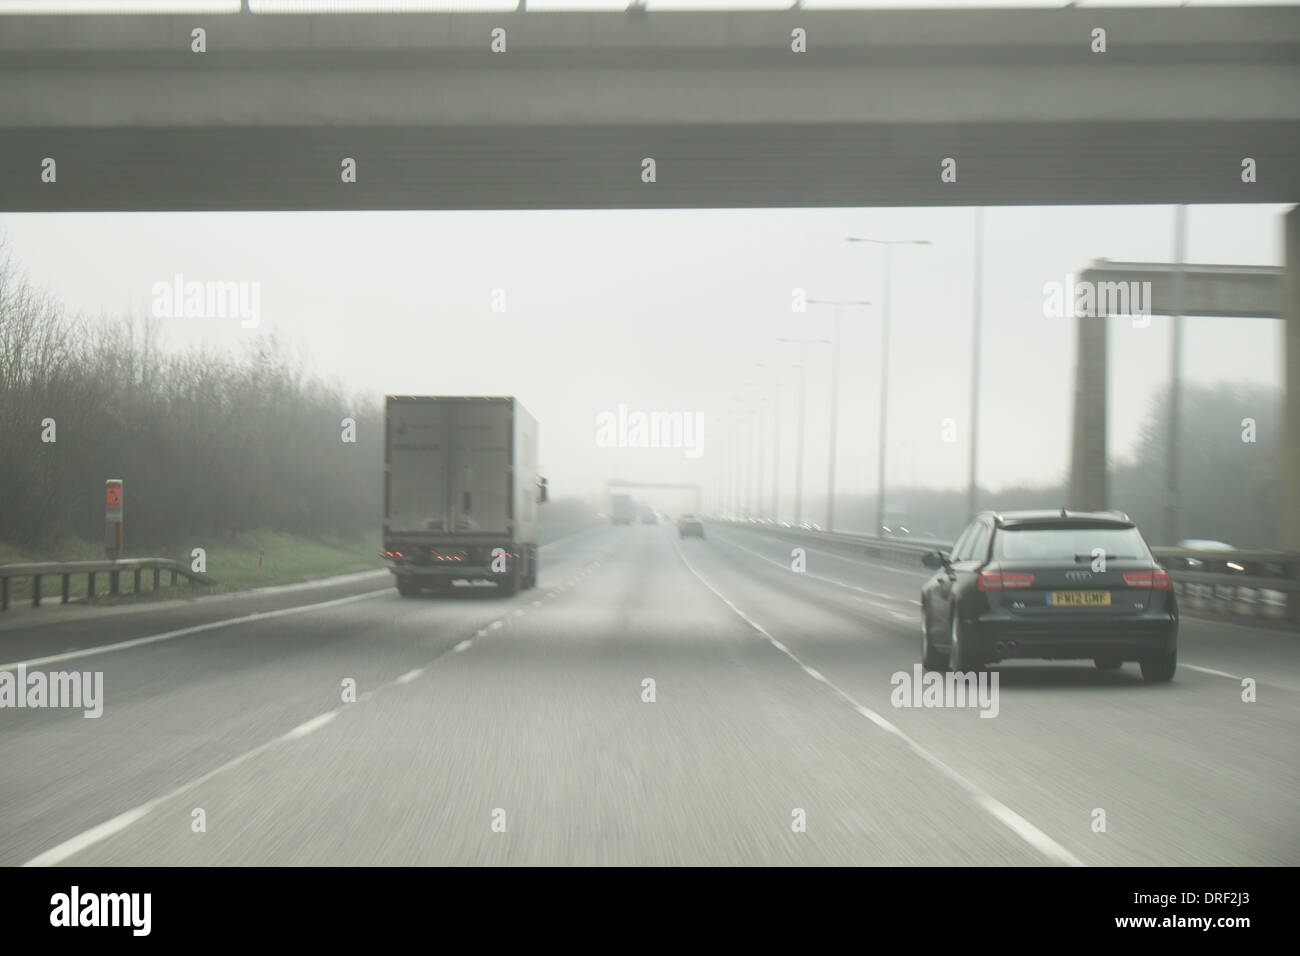 Drivers view from car on motorway, UK - Stock Image